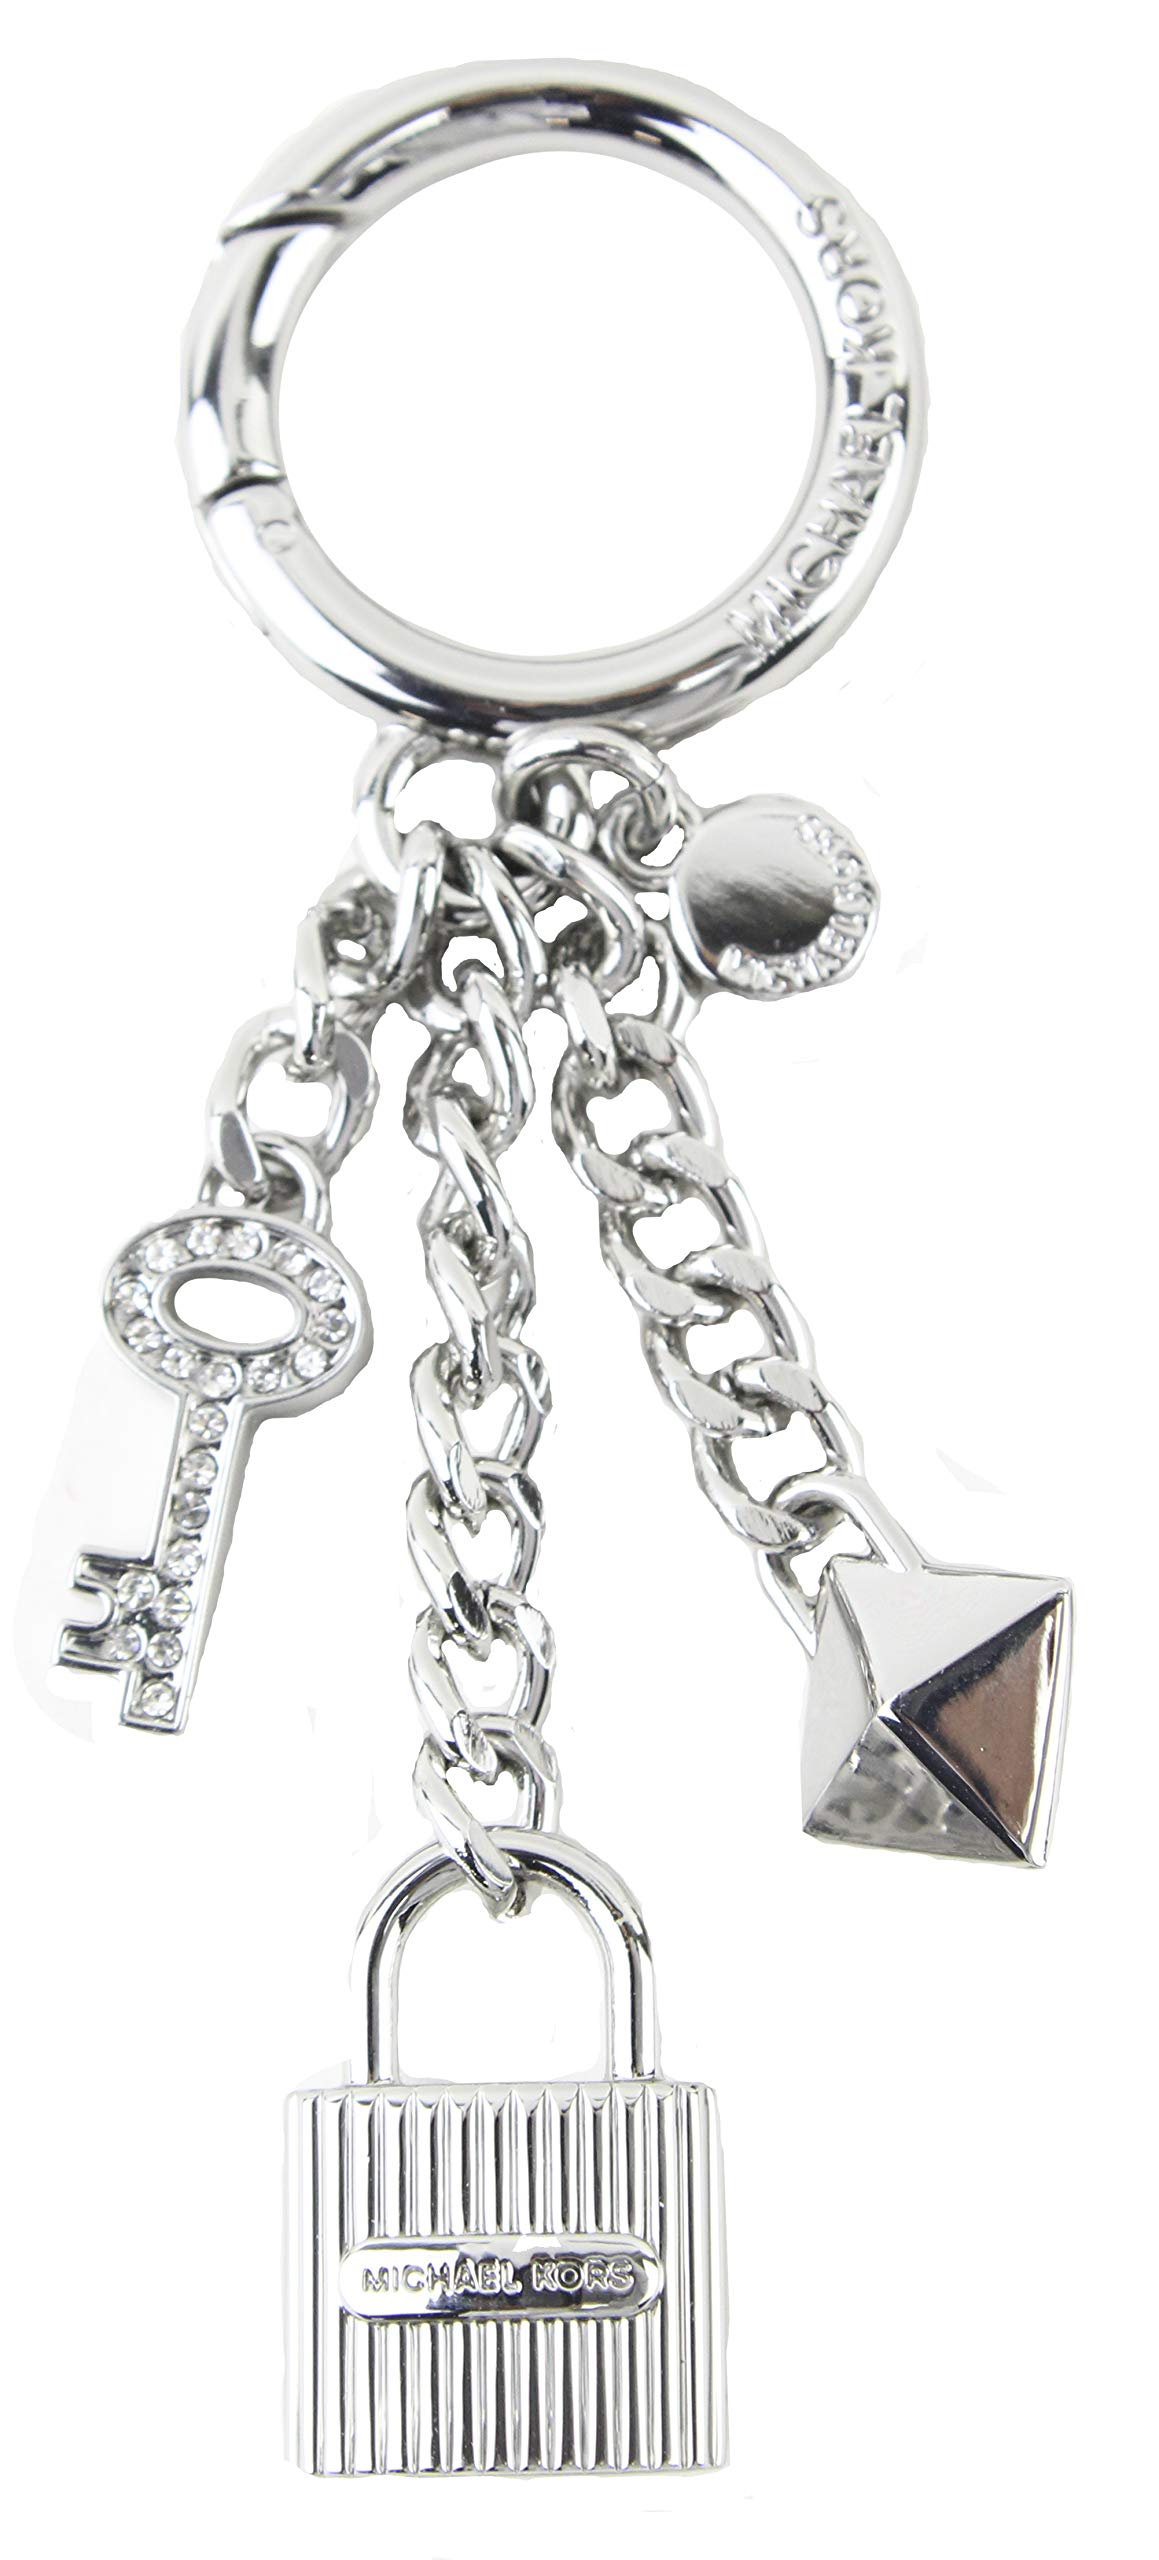 MICHAEL Michael Kors Silver Lock and Pave Key Handbag Charm Key Fob Keychain with Gift Box, Style 35F8SKCK7U